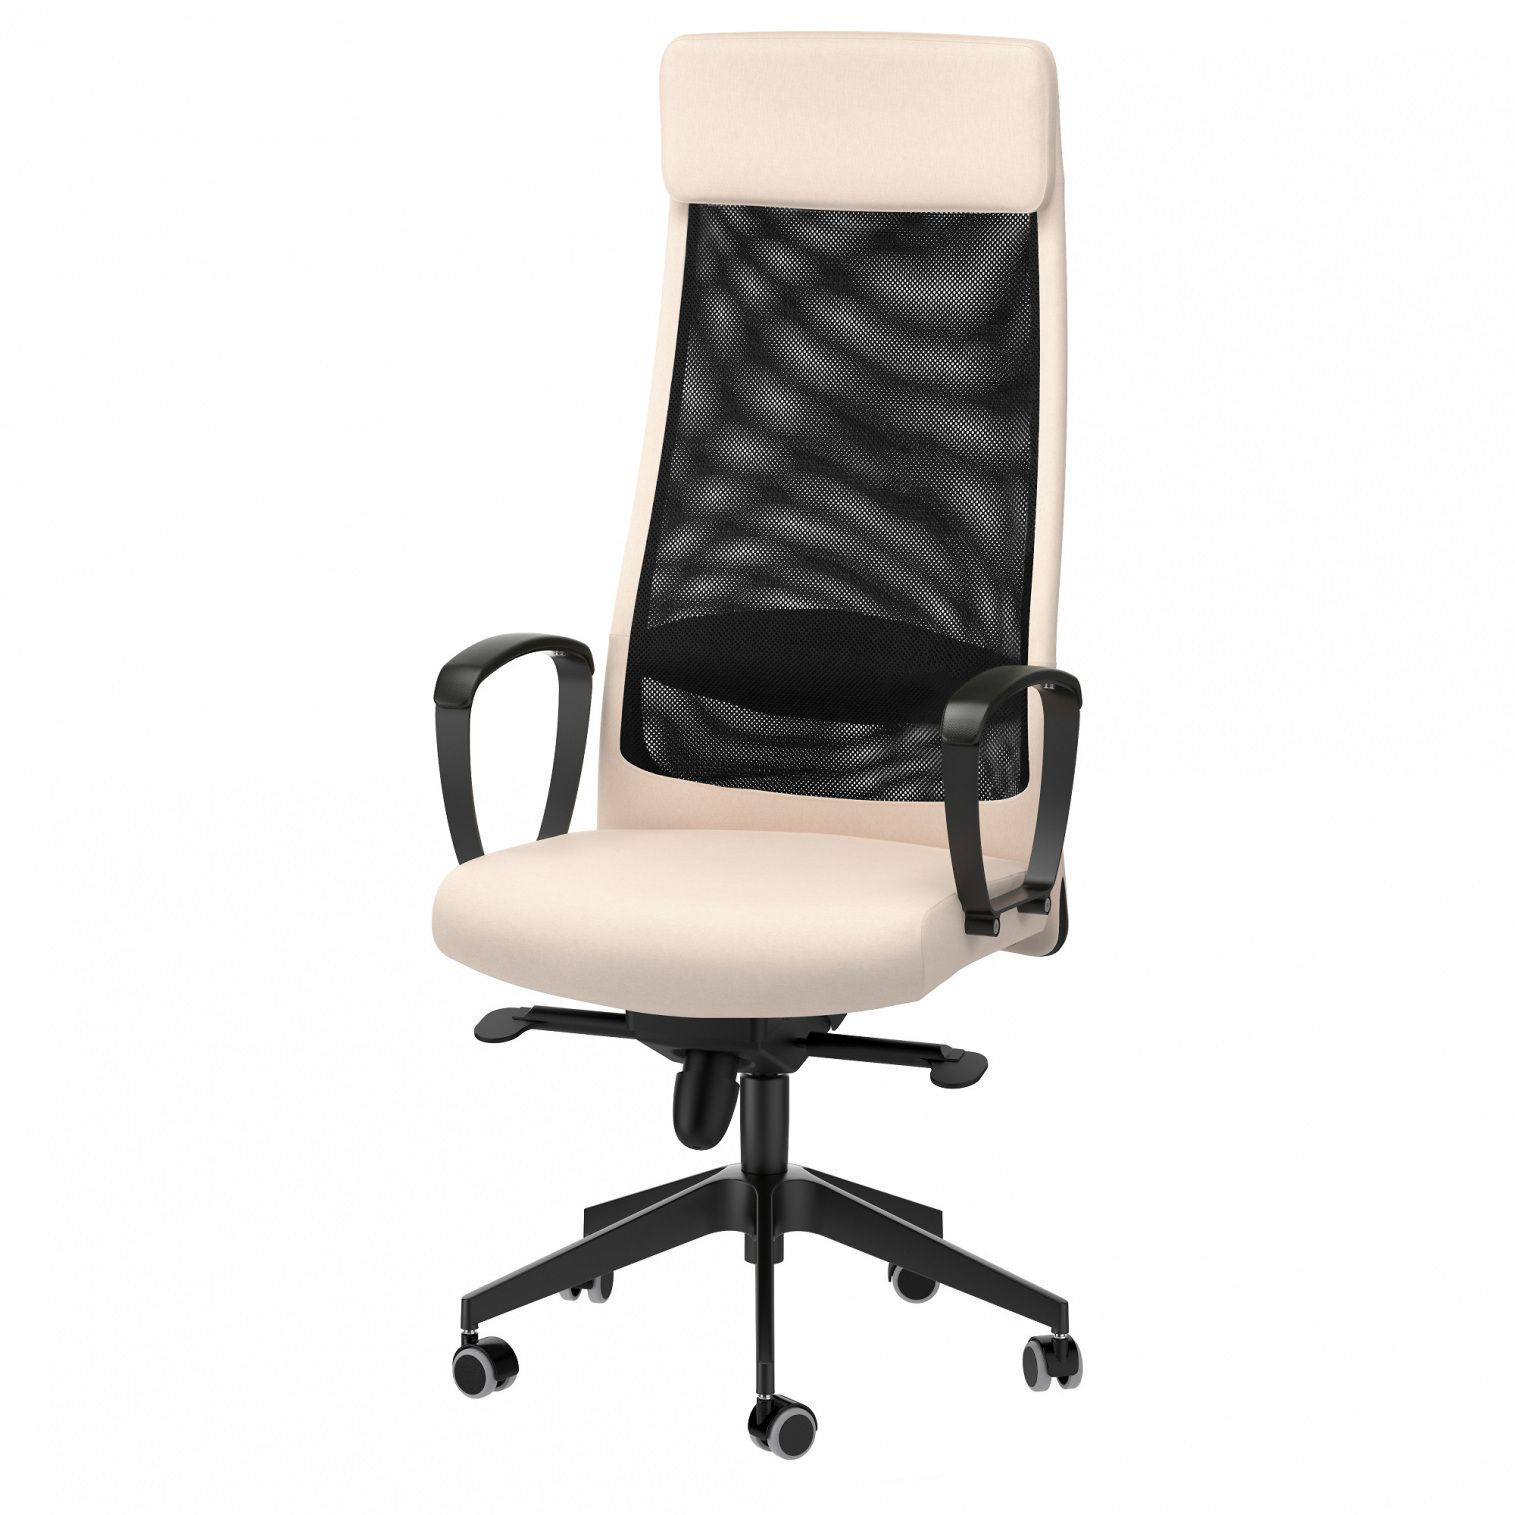 Markus Office Chair Home Office Desk Furniture Check